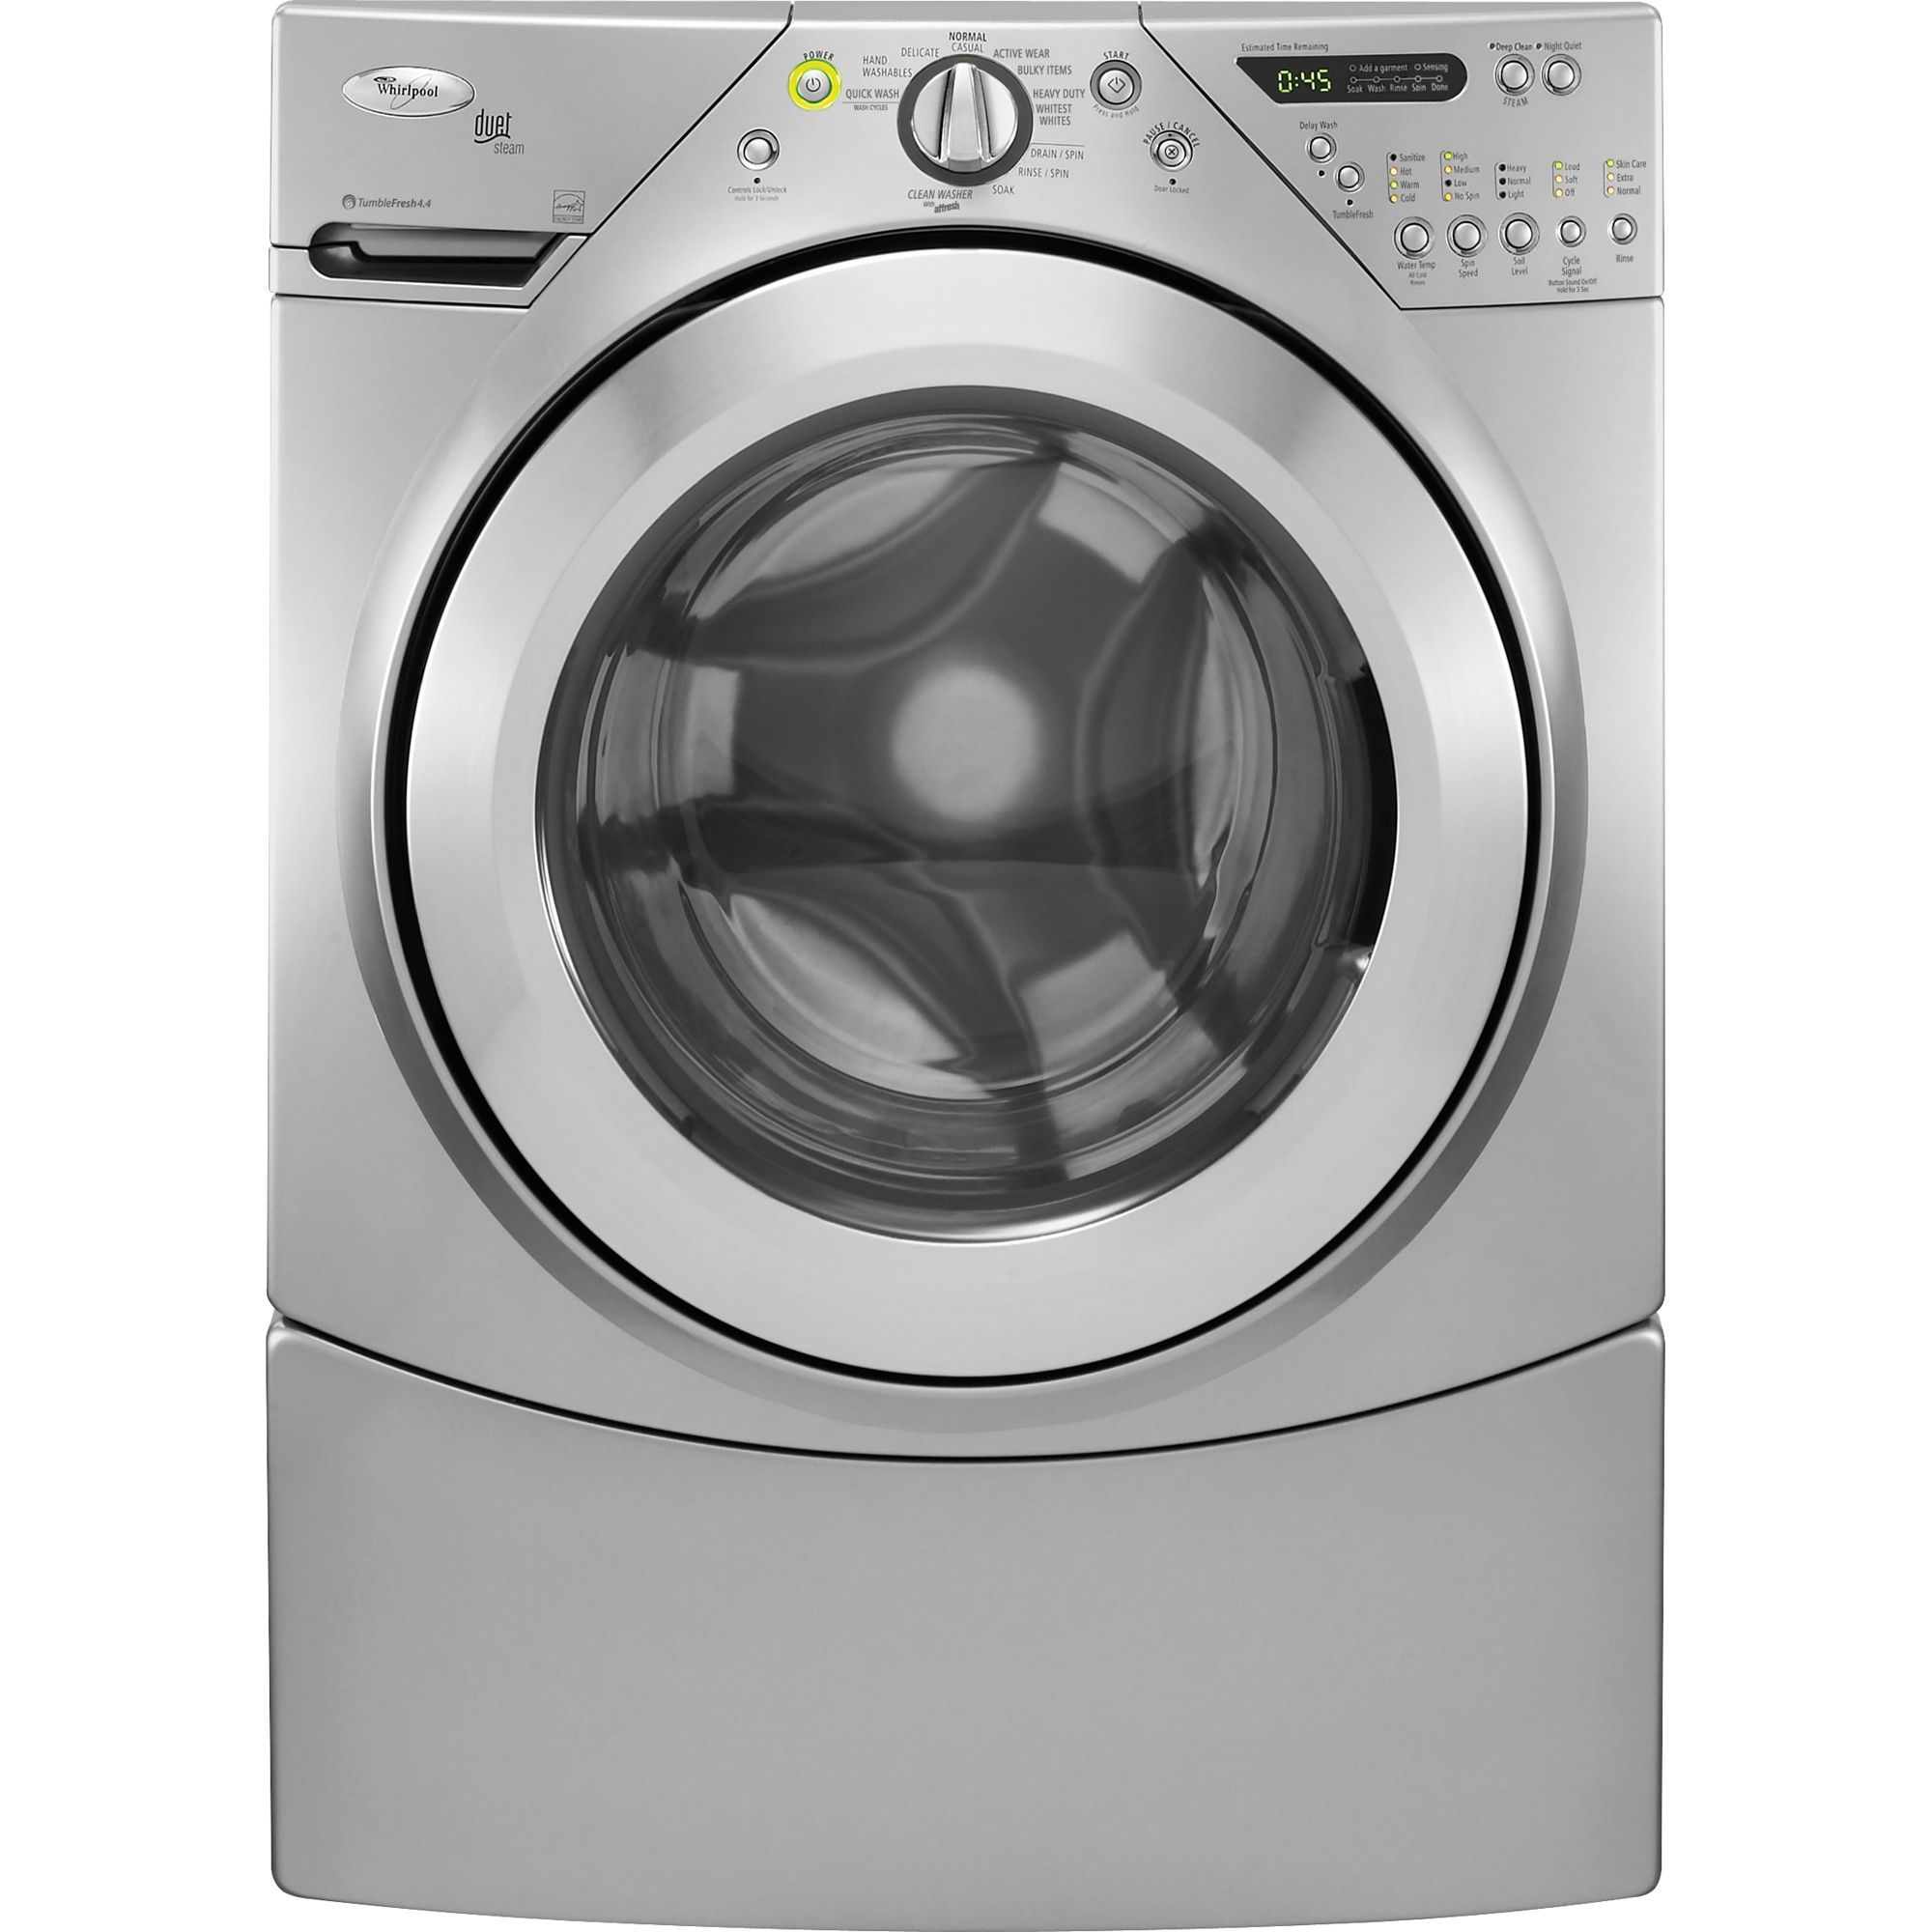 Best Matching Washer And Dryer Sets Best Washer Dryer Washer